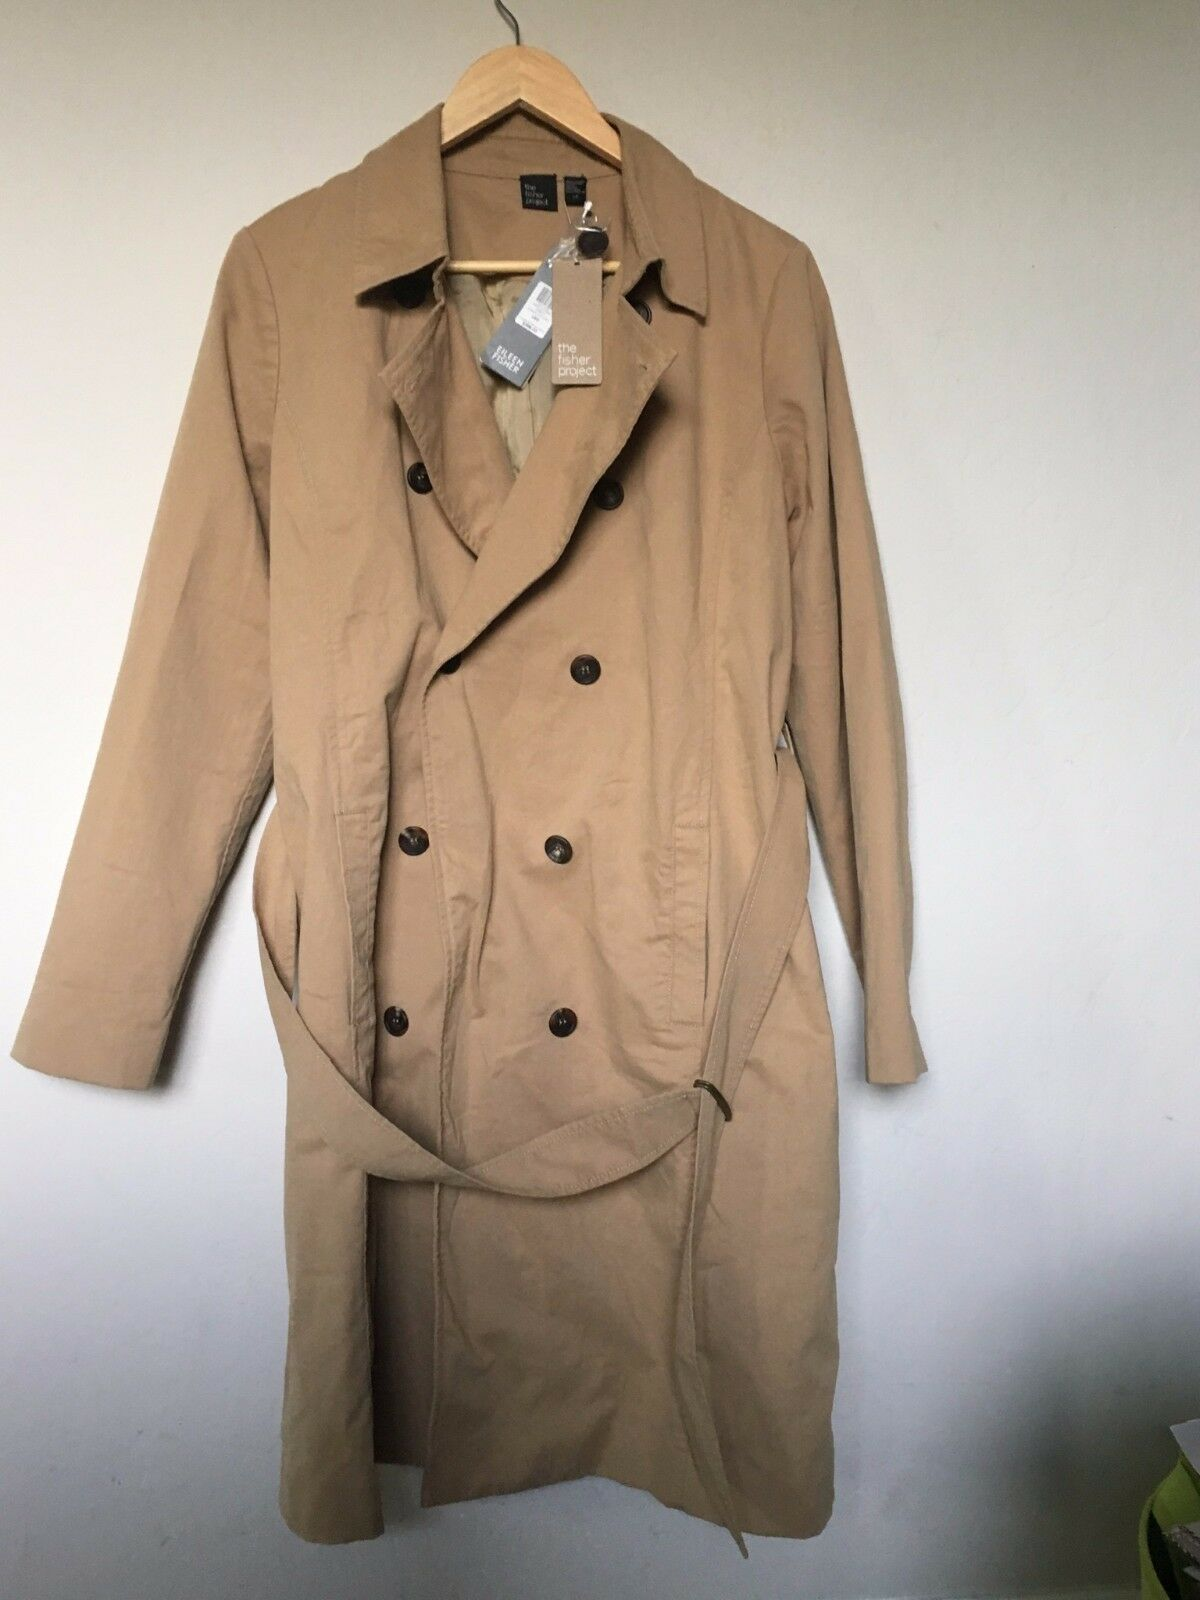 Eileen Fisher Trench Coat Classic CLR Size L color Yellow Wheat New With Tags